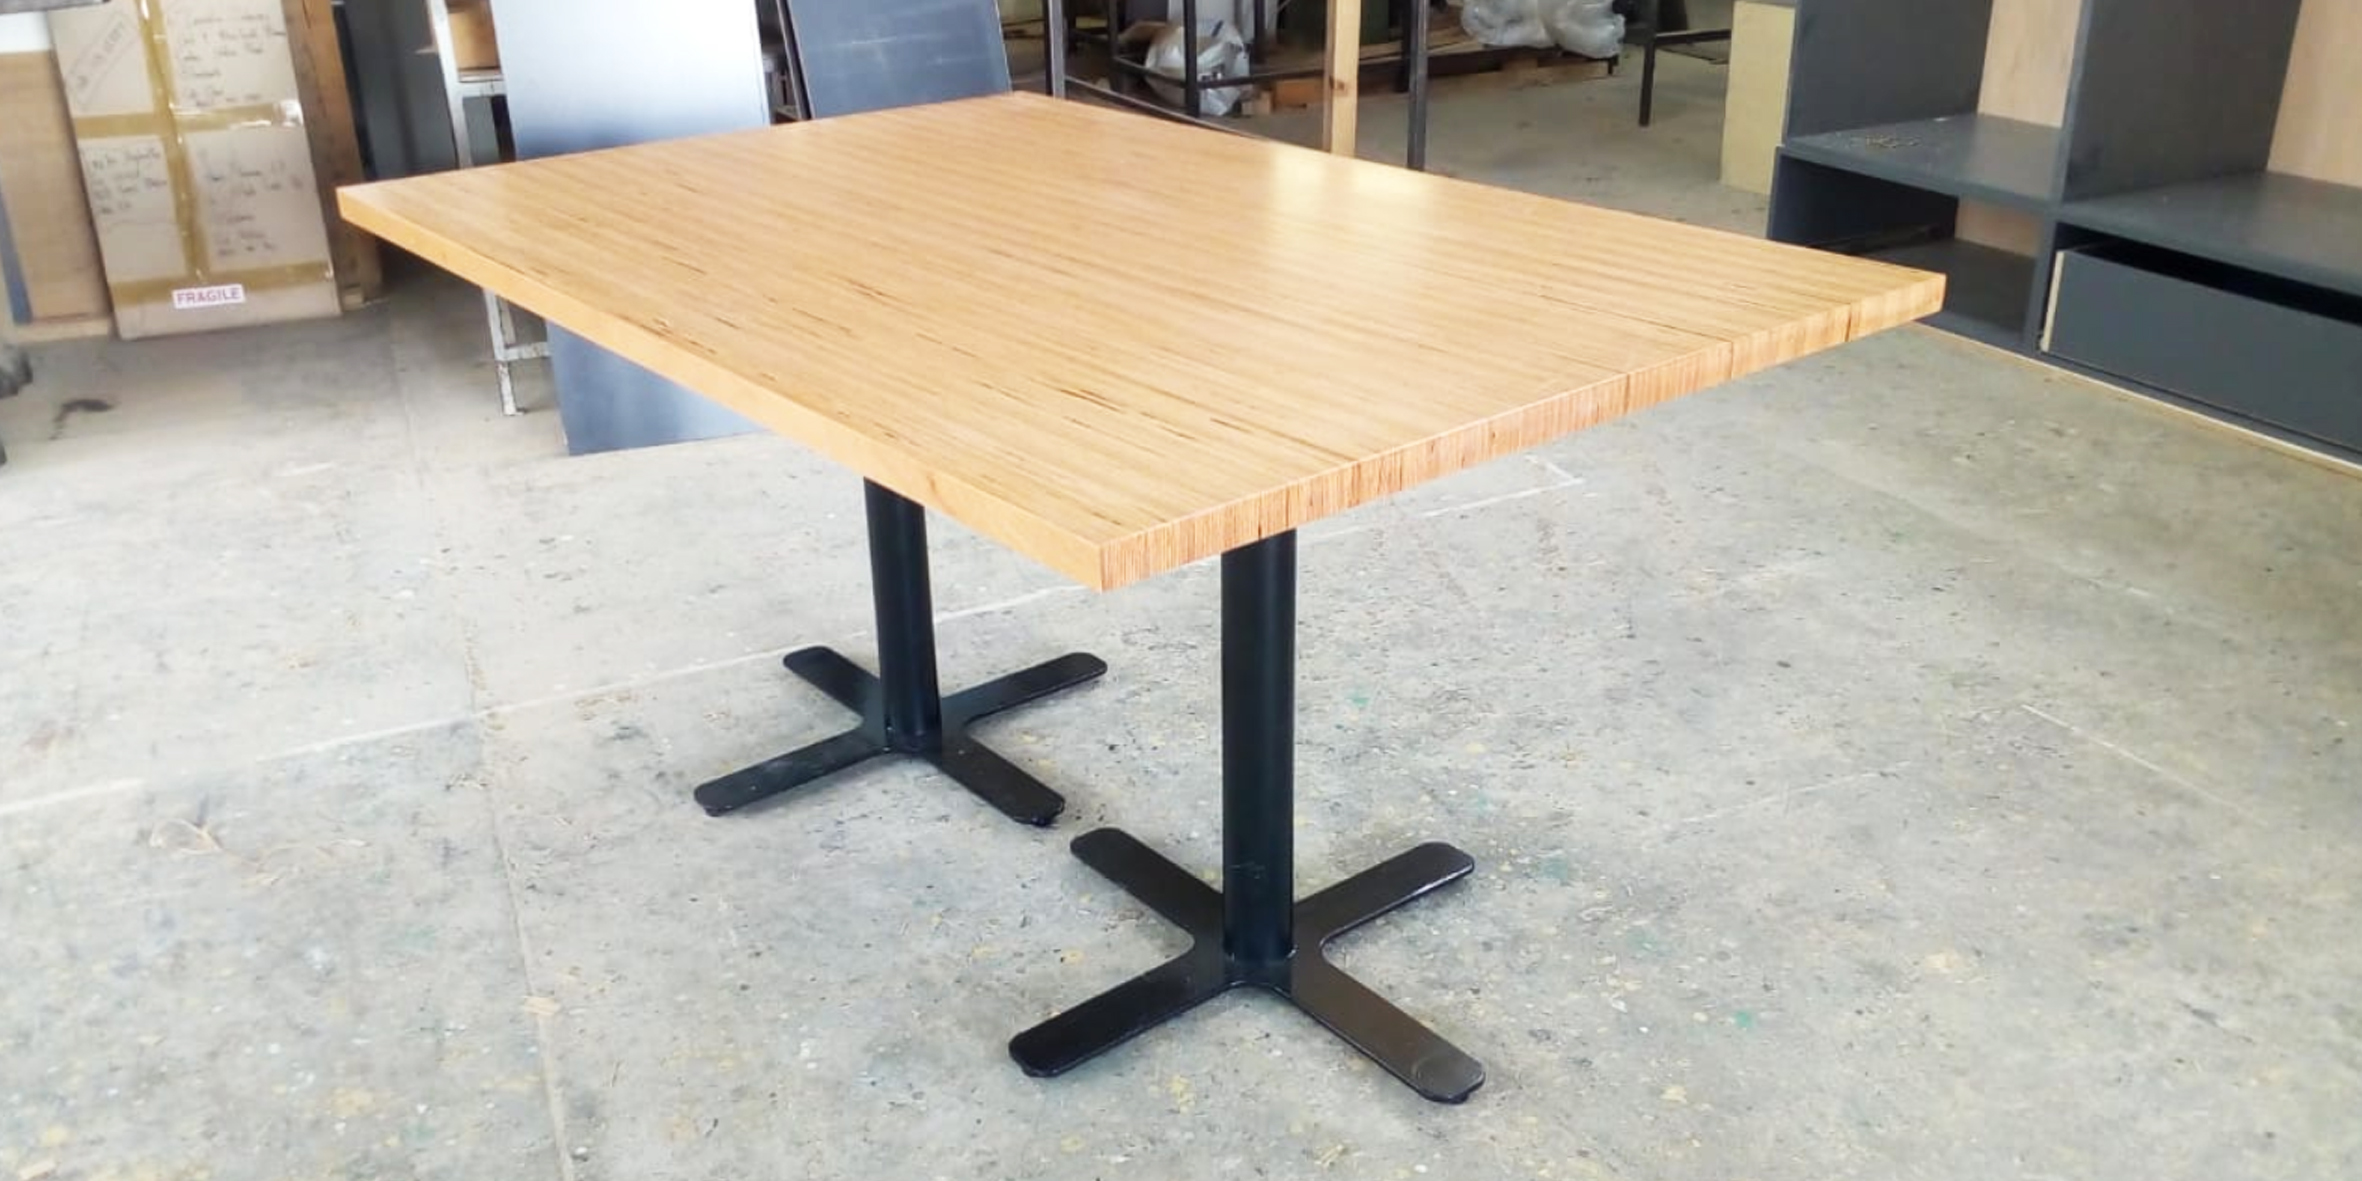 fbs - little boardroom table, 1500 l x 1